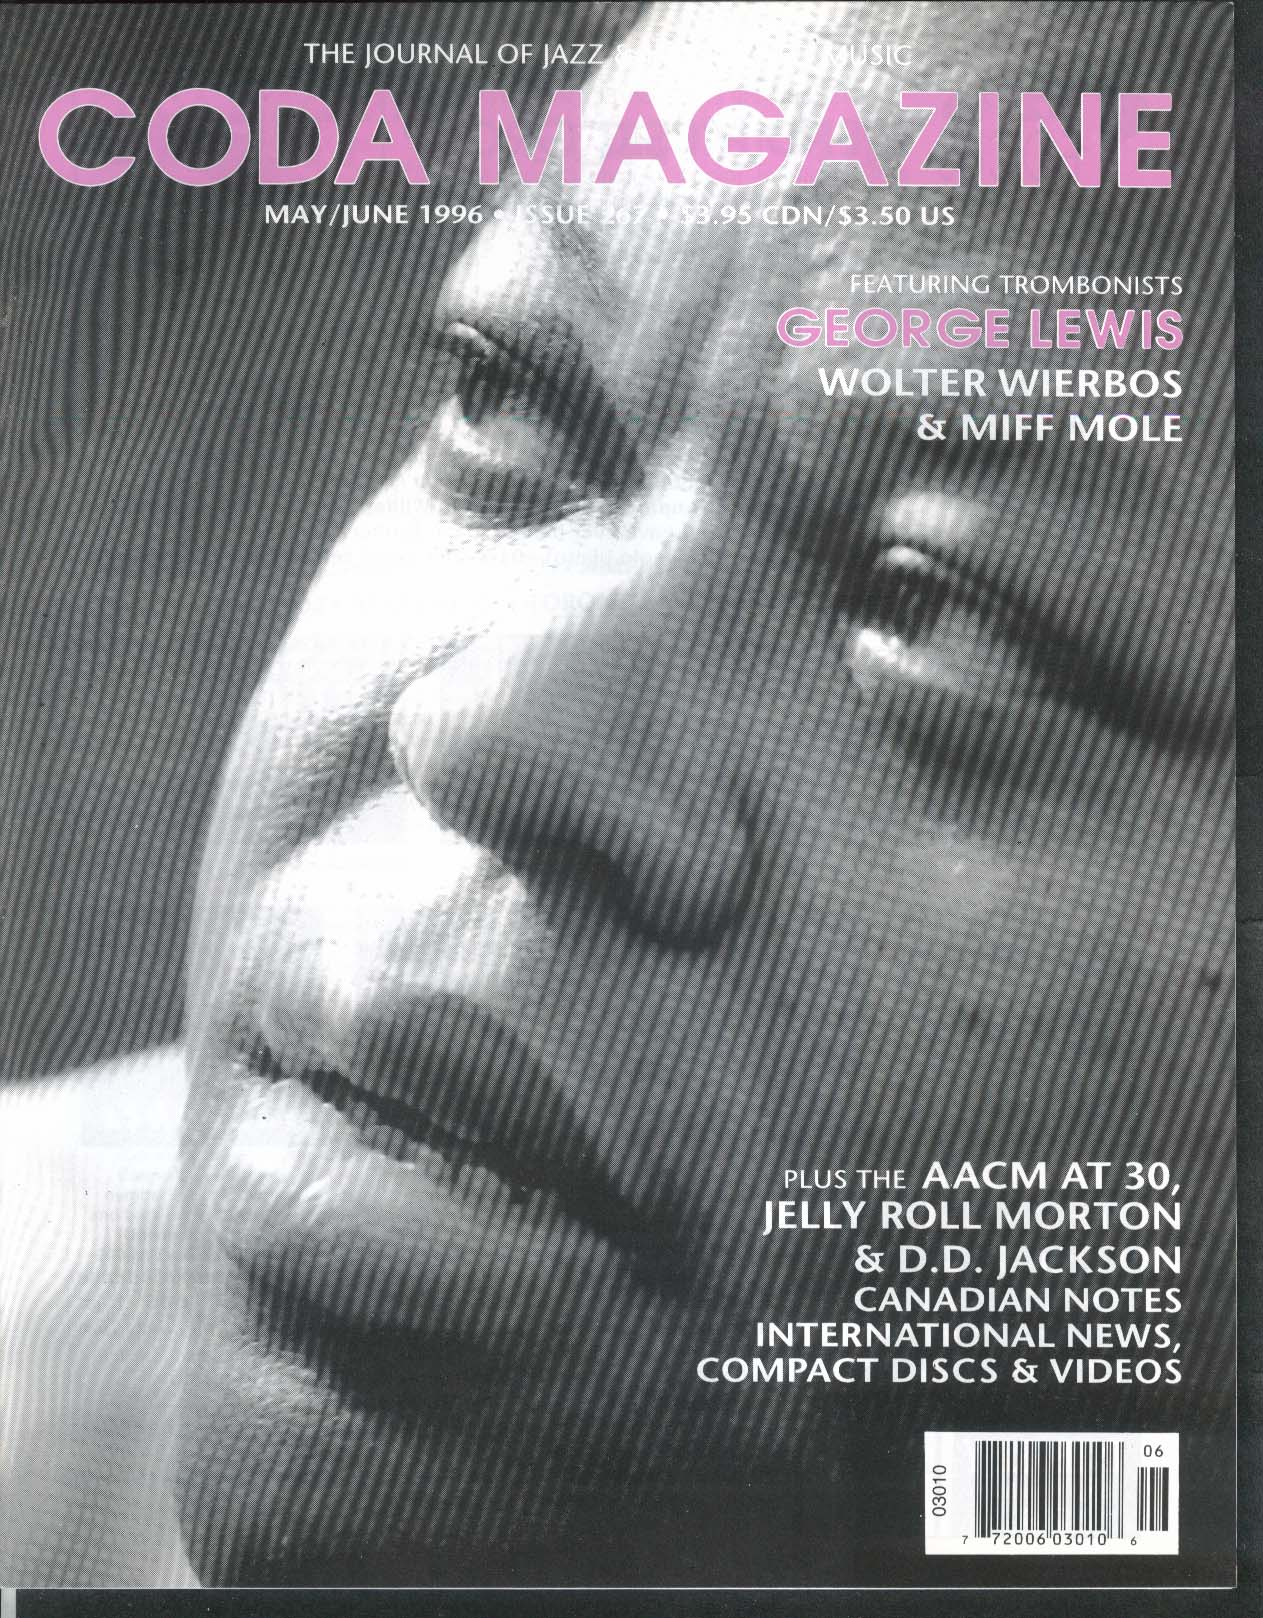 CODA #267 George Lewis Wolter Wierbos Miff Mole Jelly Roll Morton + 5-6 1996